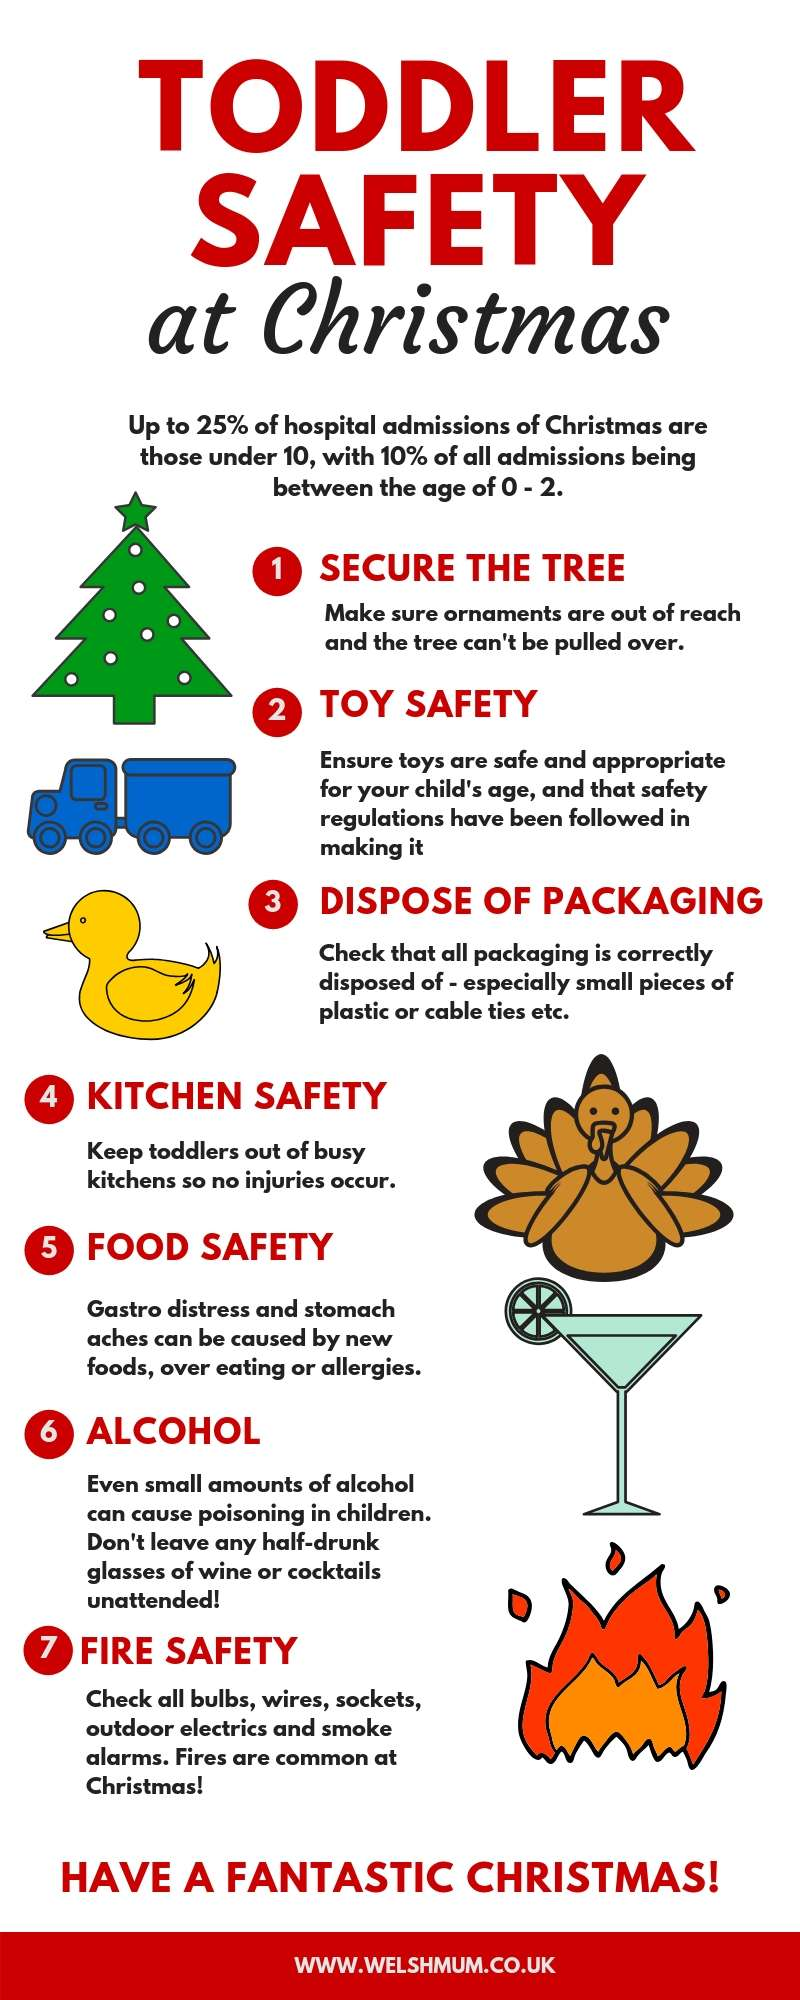 Follow these steps to keep your toddler safe this Christmas!